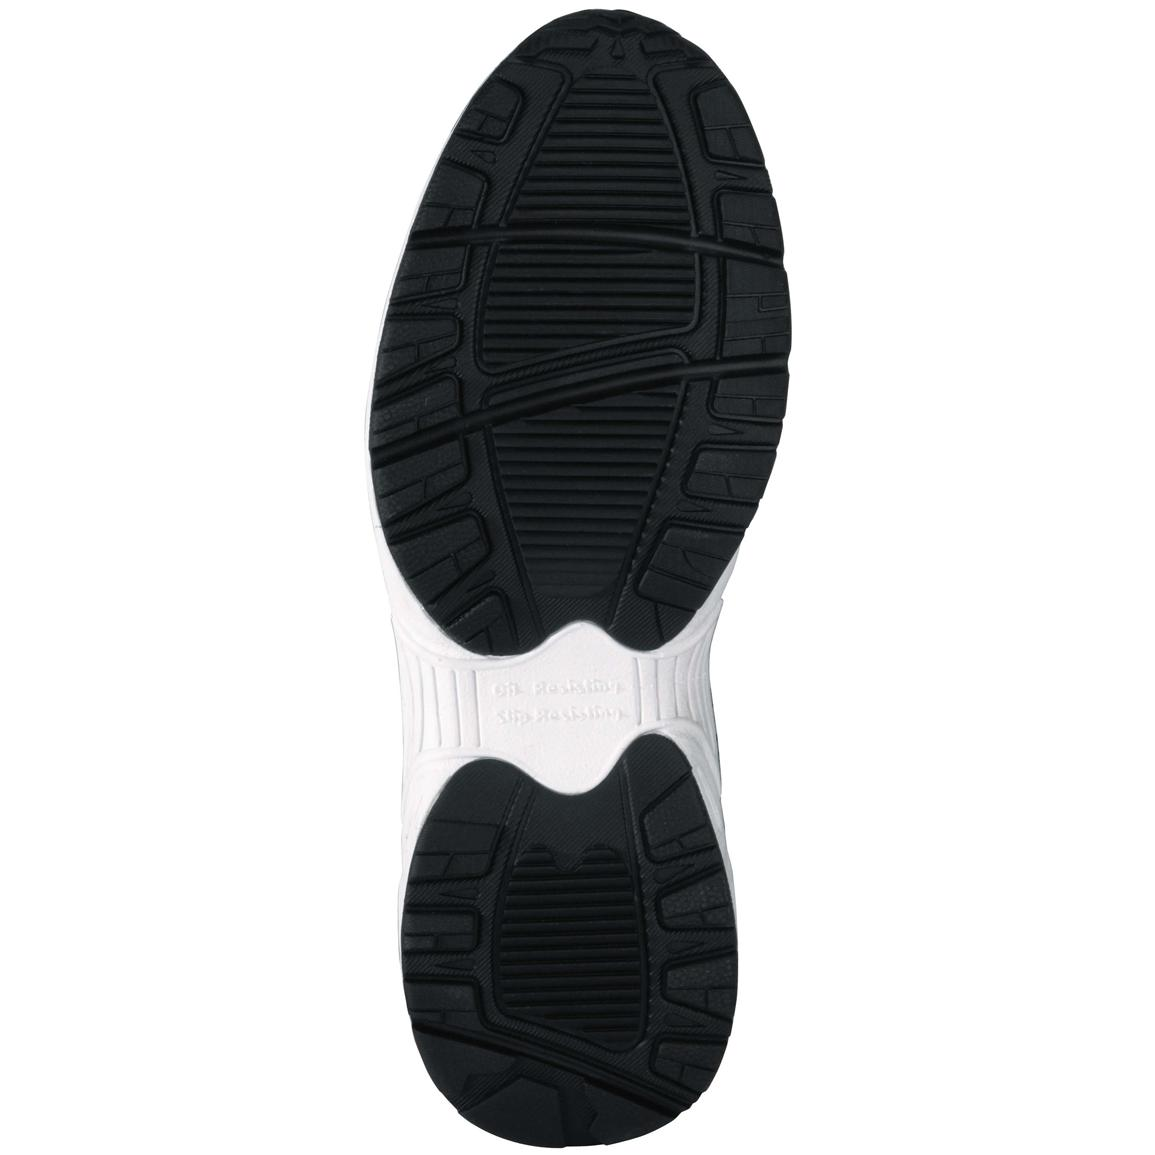 Dual density rubber outsole is oil, abrasion, chemical, heat, metal chips and slip resistant